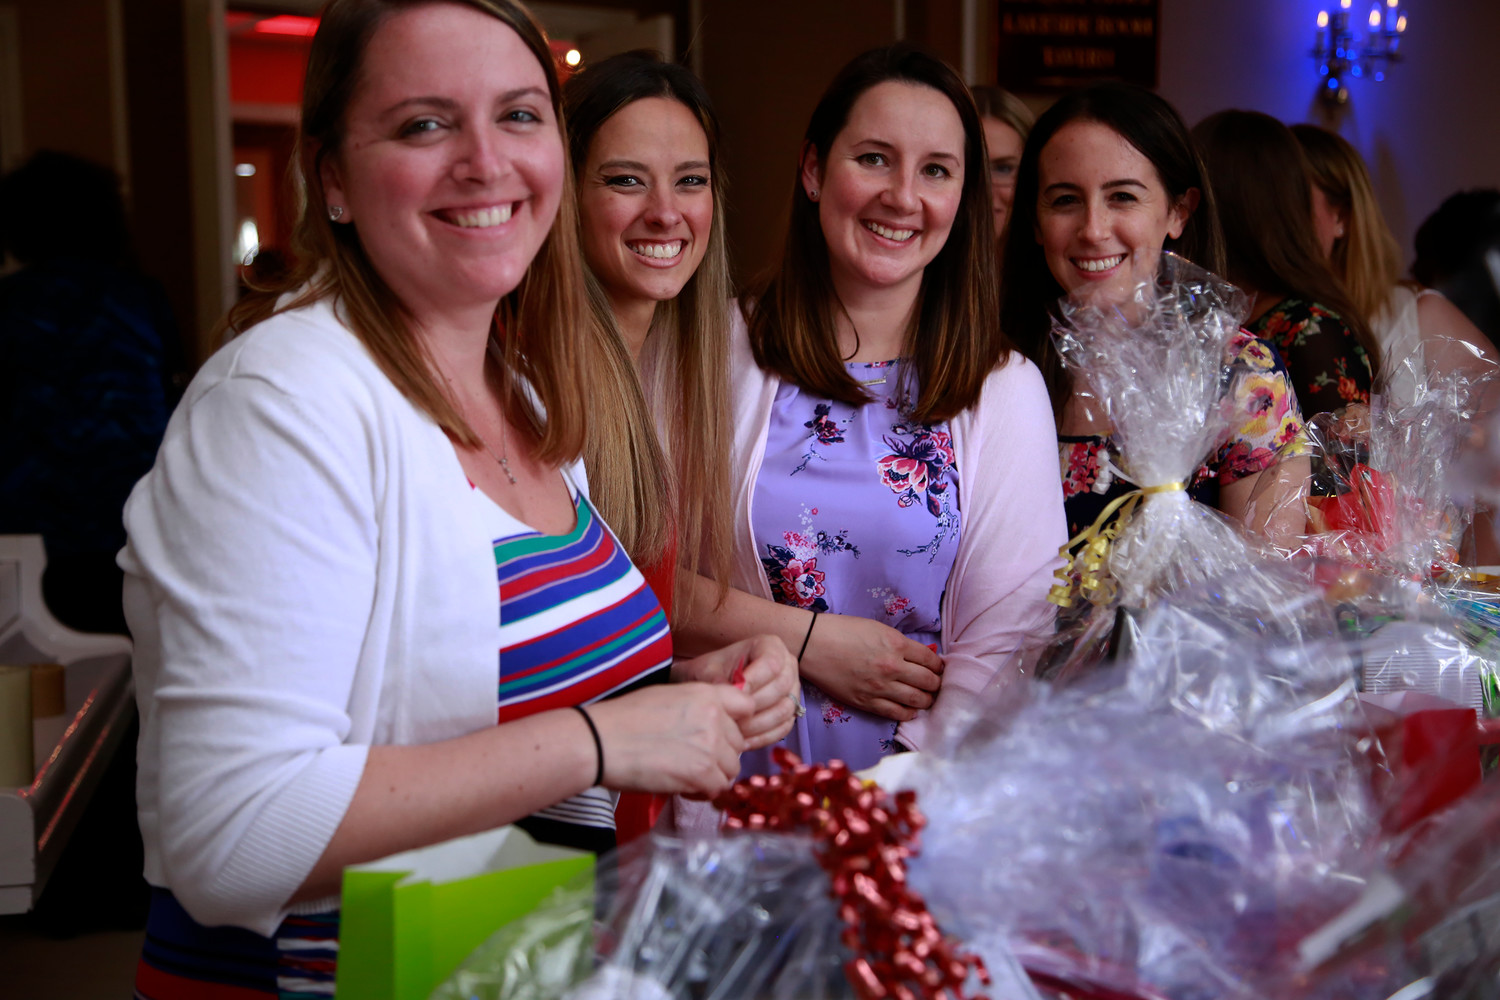 Teachers from Archer Street School, Jennifer Skelly, Brook McKenna, Lisa Scarola and Danielle Appel, were all smiles before they browsed the raffle baskets.